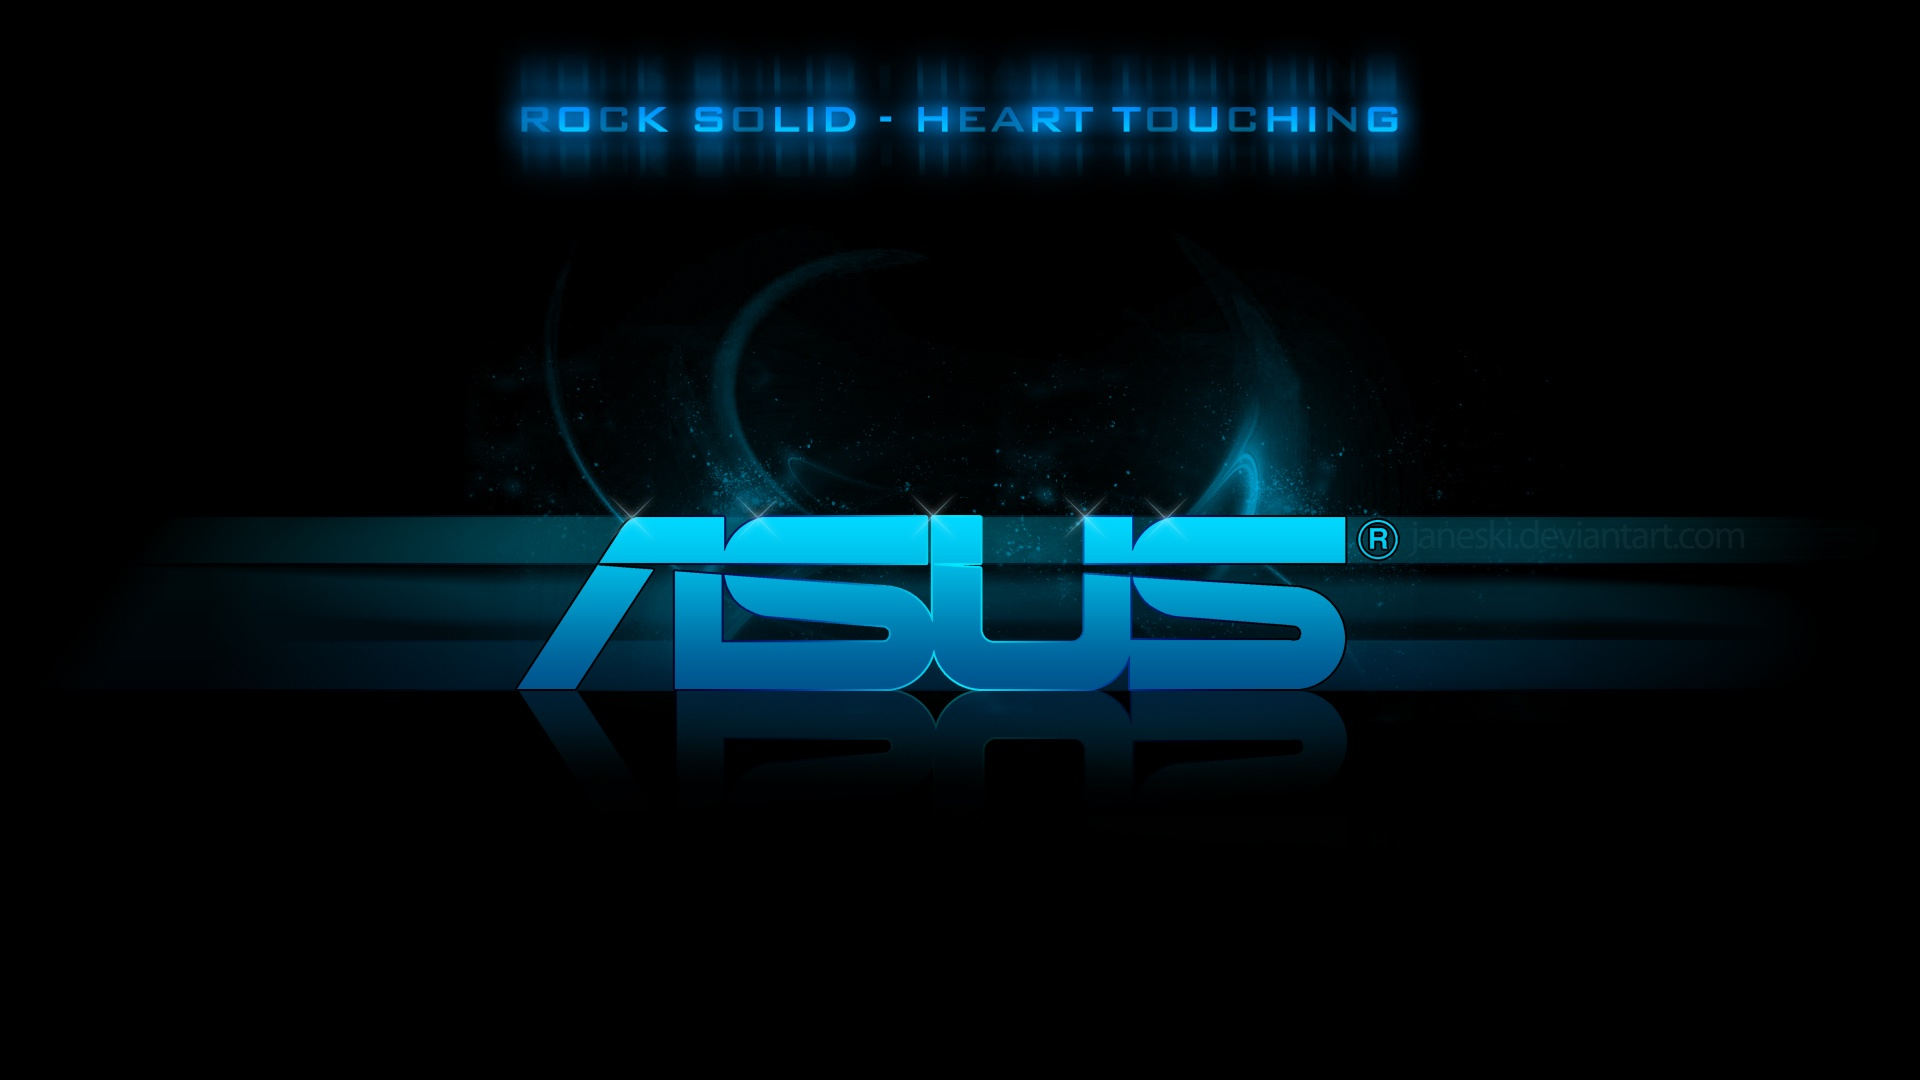 asus wallpaper hd related - photo #13